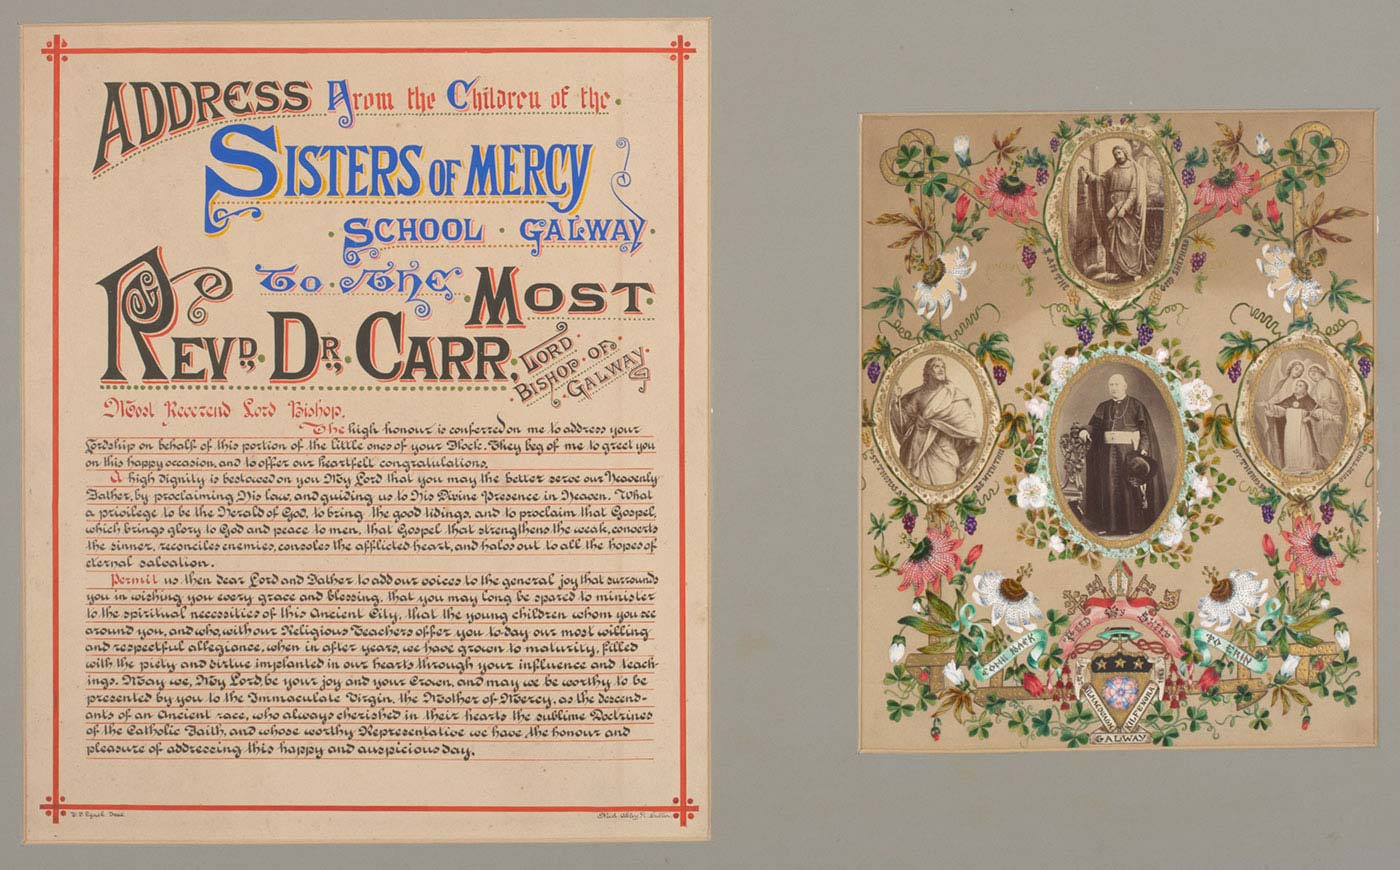 Page from a religious-themed book featuring calligraphy, ornate borders and illustrations.